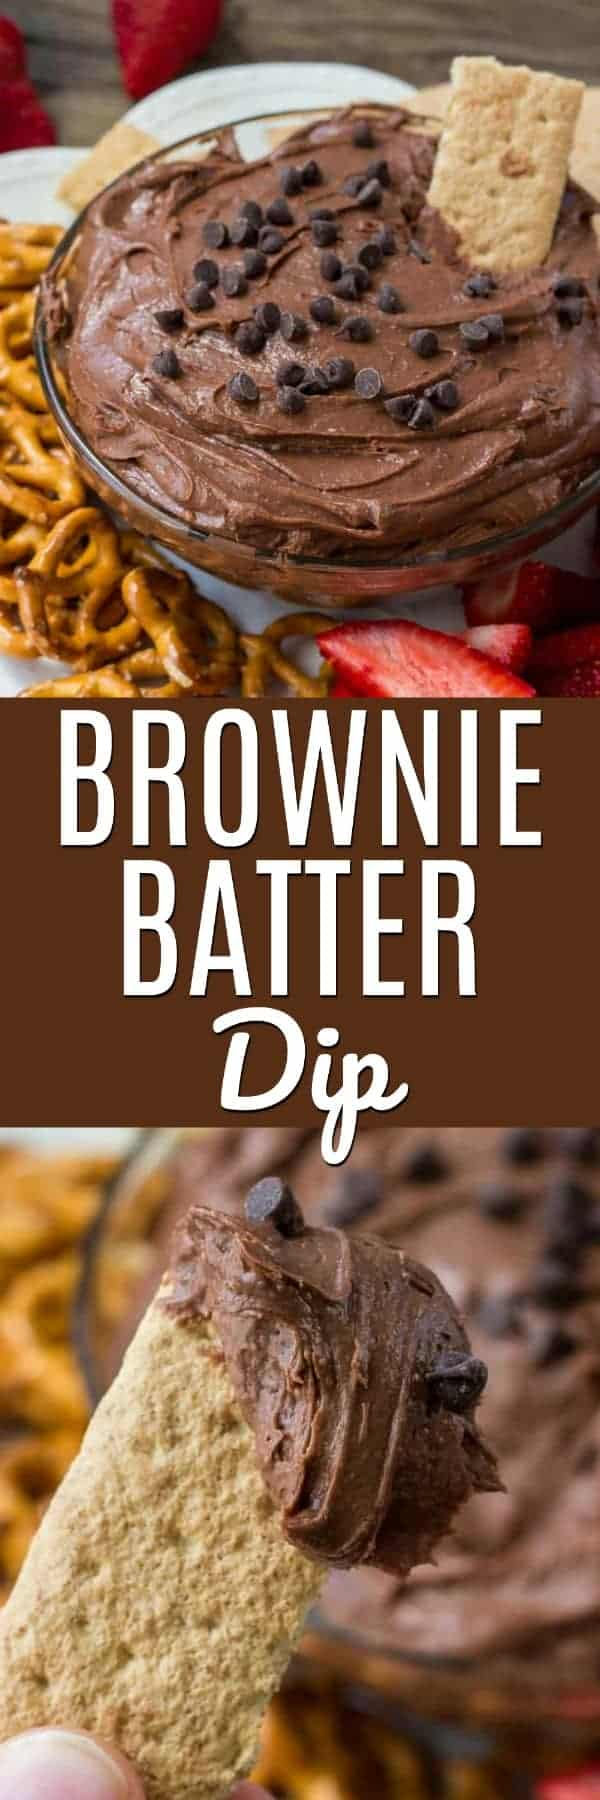 Brownie batter dip is the most decadent, delicious, easy way to eat brownies. It's extra smooth and creamy, super chocolate-y and the perfect treat for parties and get-togethers.